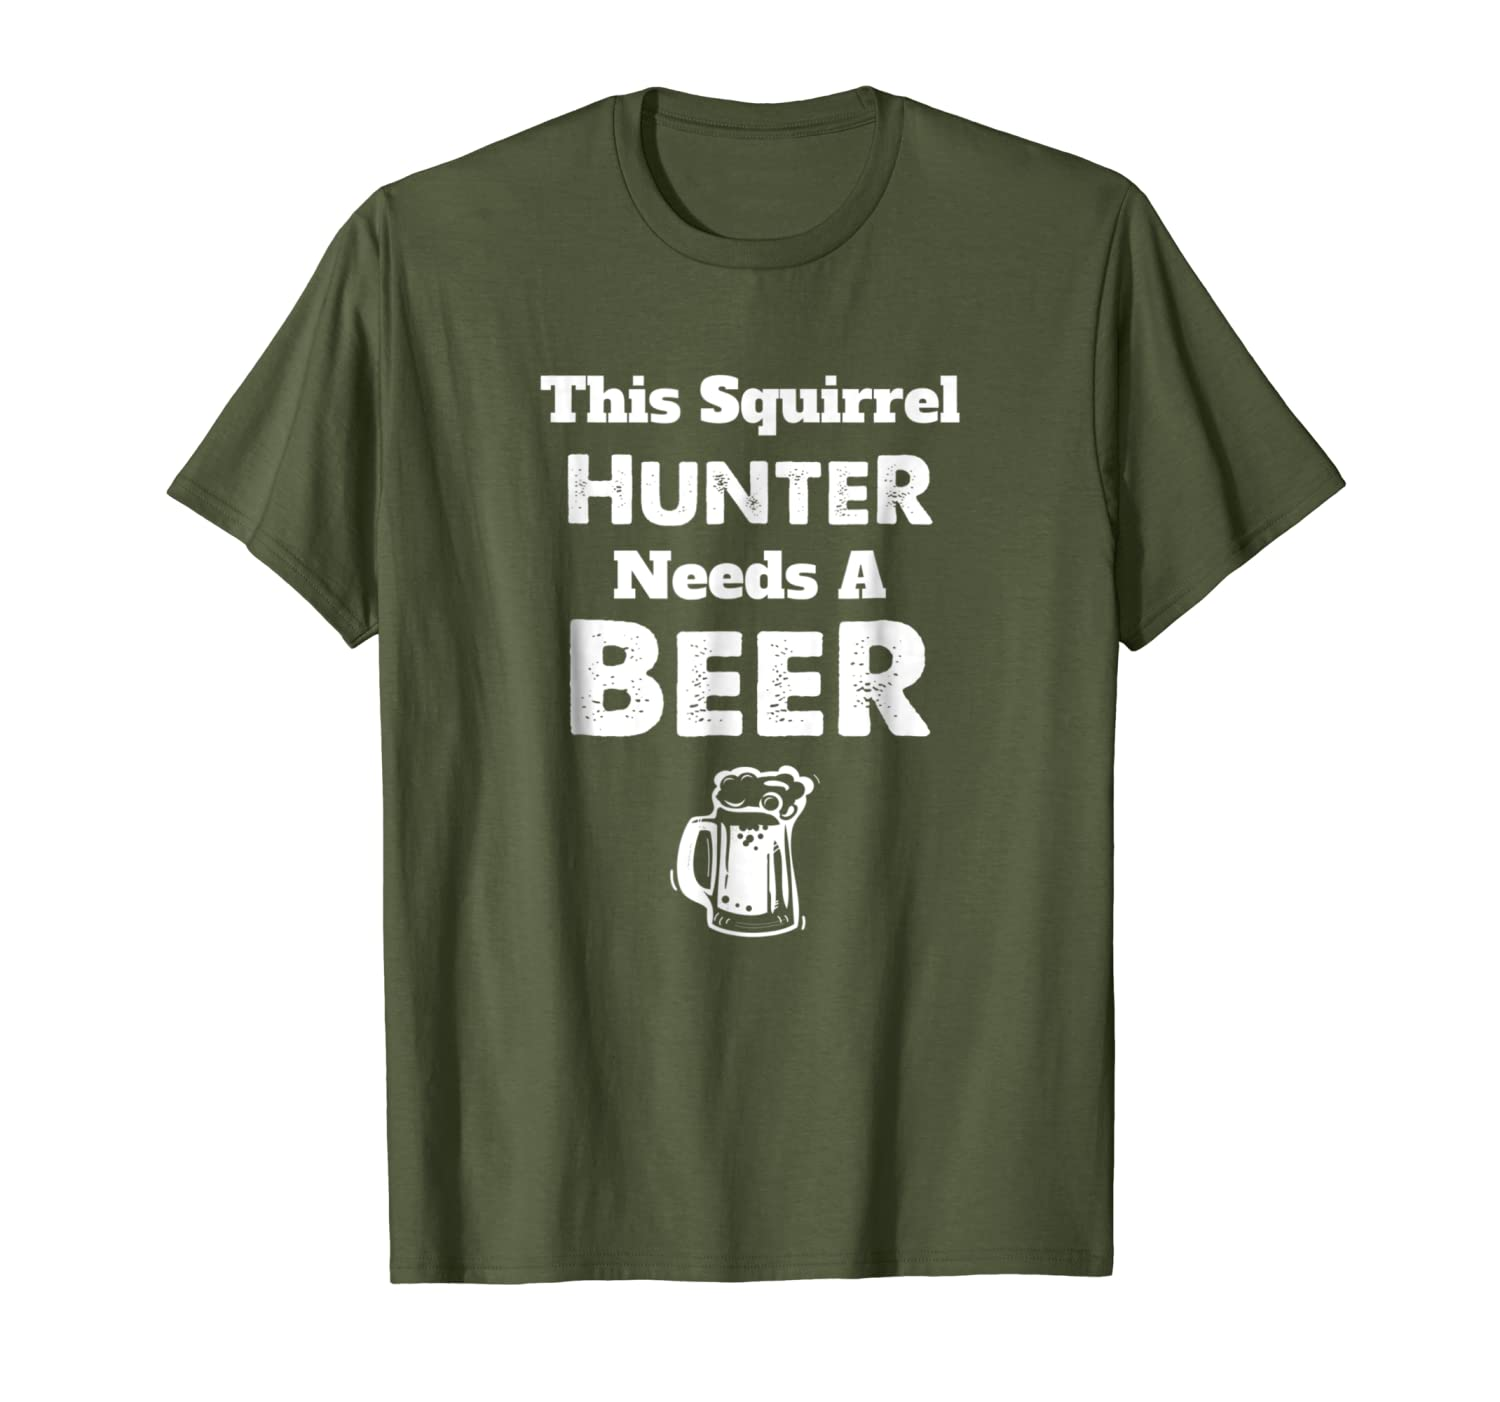 Funny Squirrel Hunting Hunter Hunt T Shirt - Season Gift Unisex Tshirt